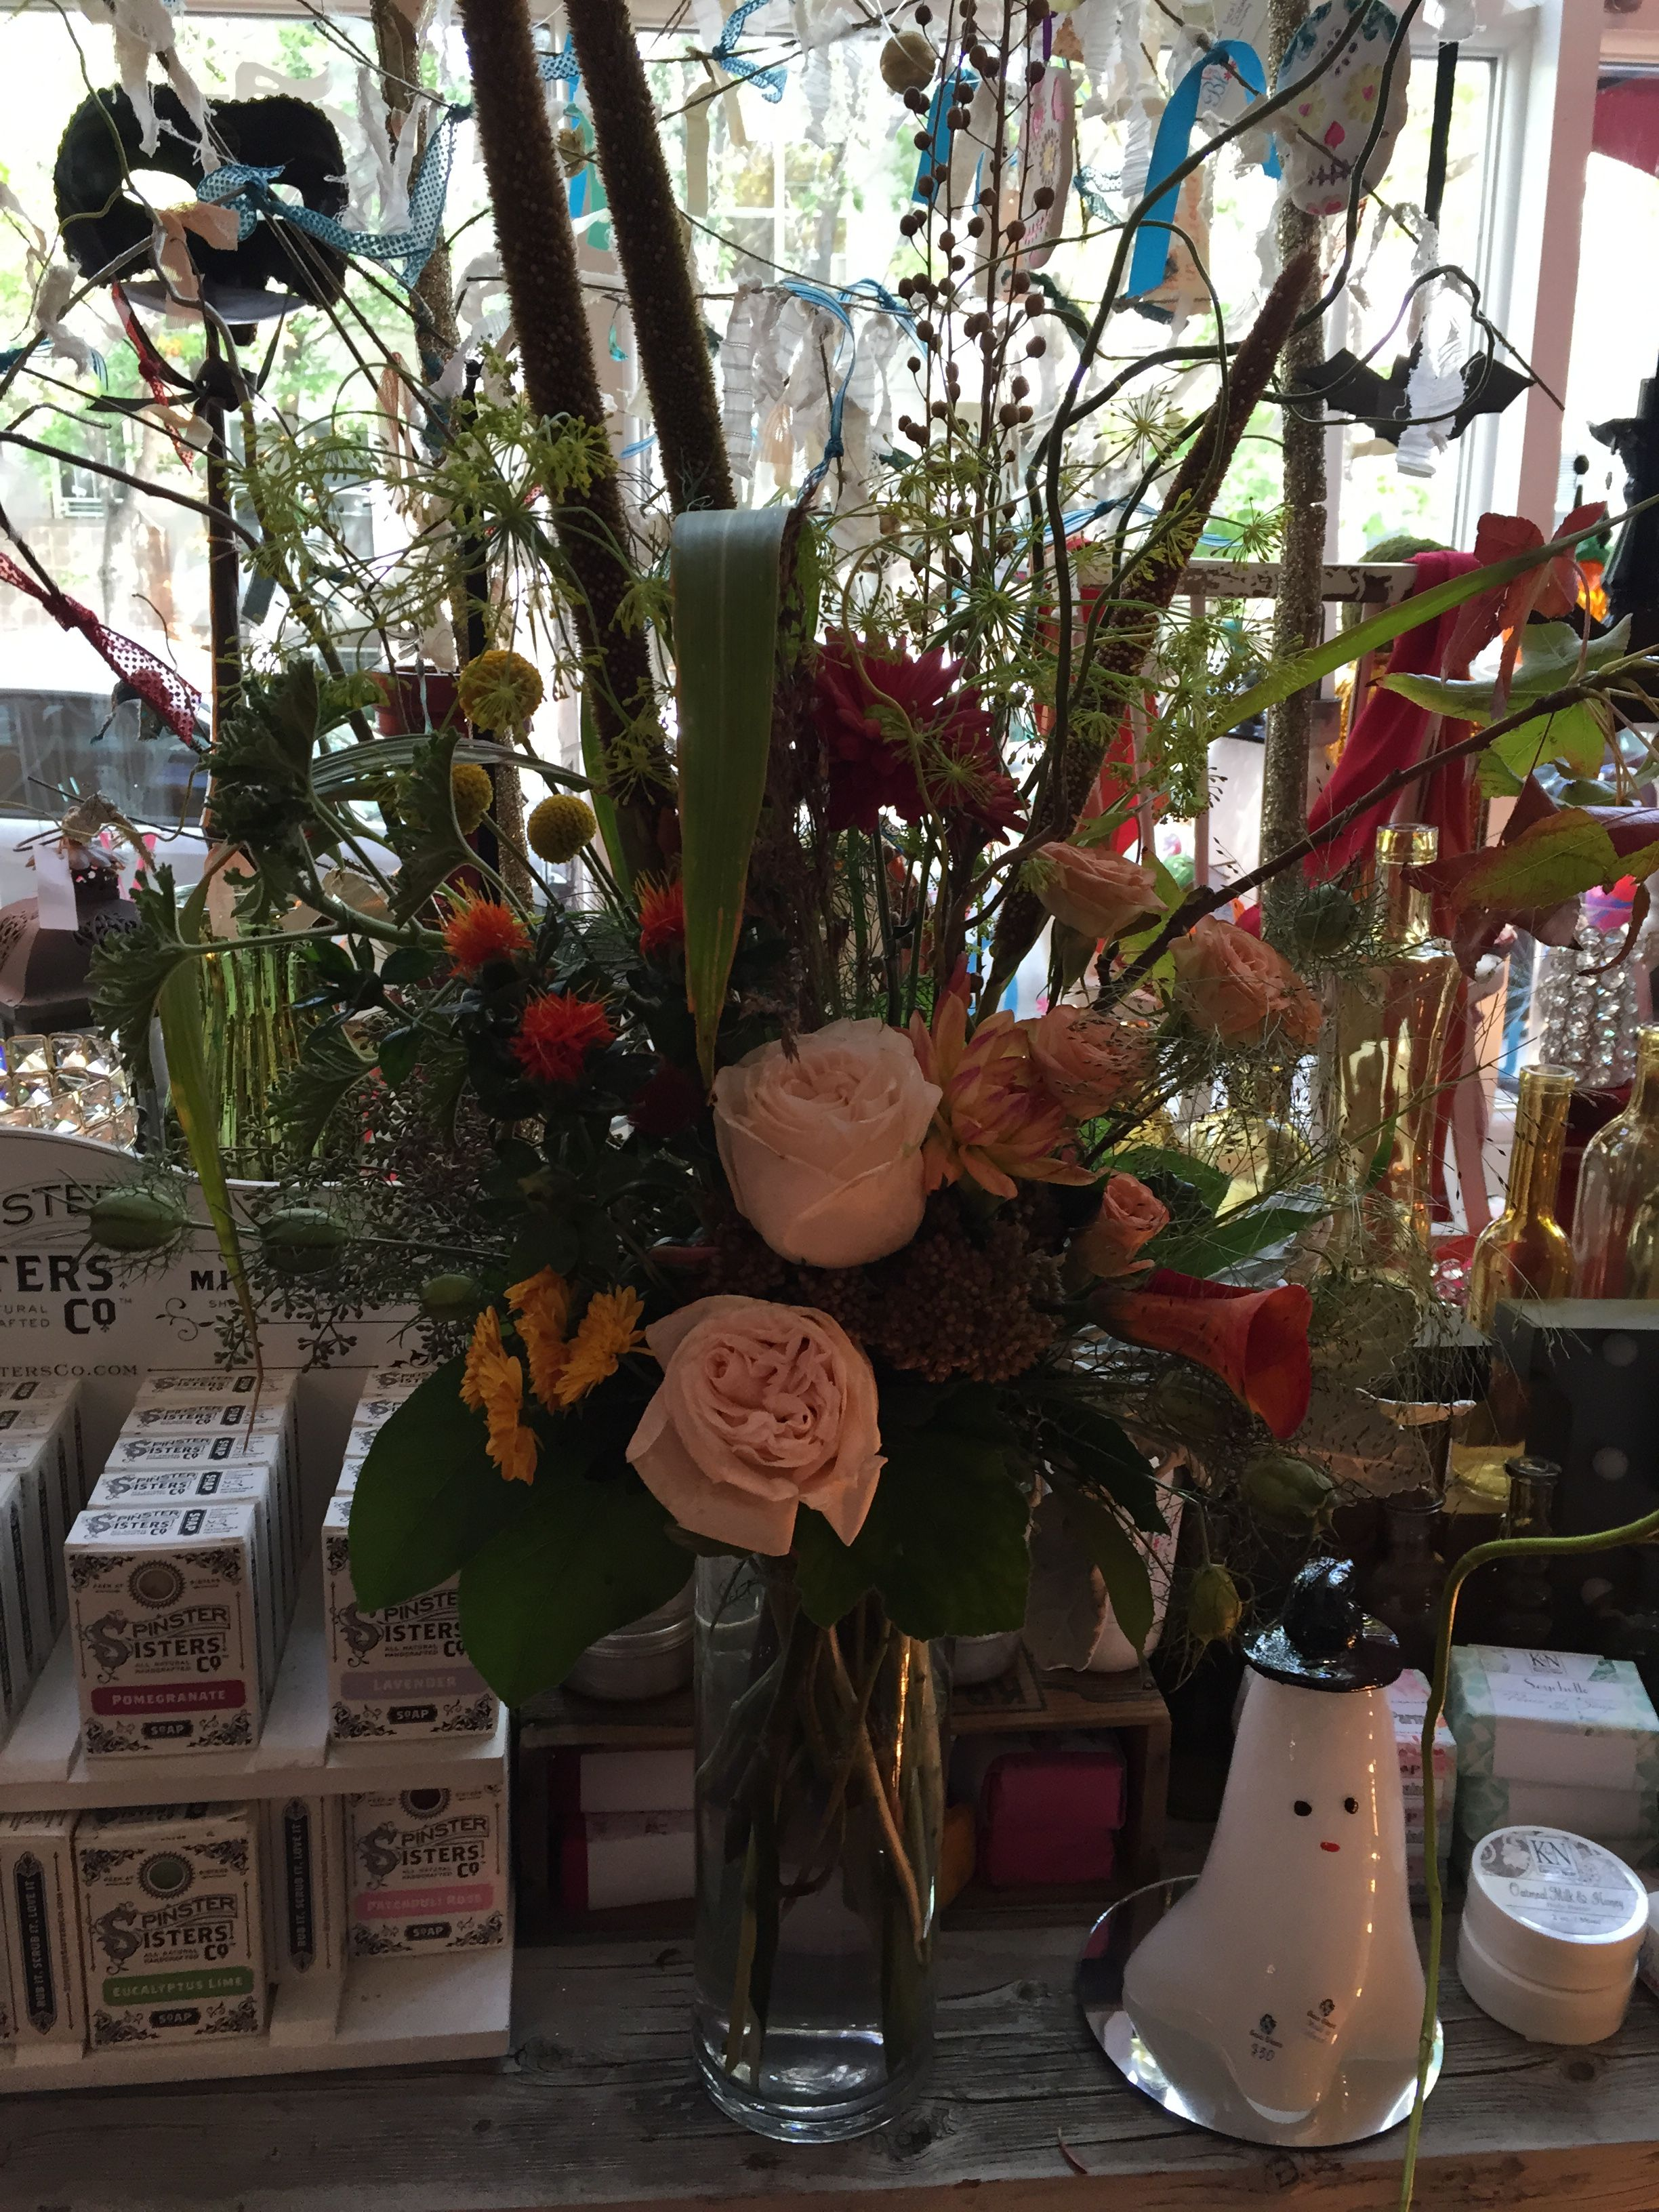 Blush Garden Roses, Dill, Orange Flame Calla Lilies, Dahlias, Craspedia, Blush Spray Roses, Nigella Pods, Seeded Eucalyptus,